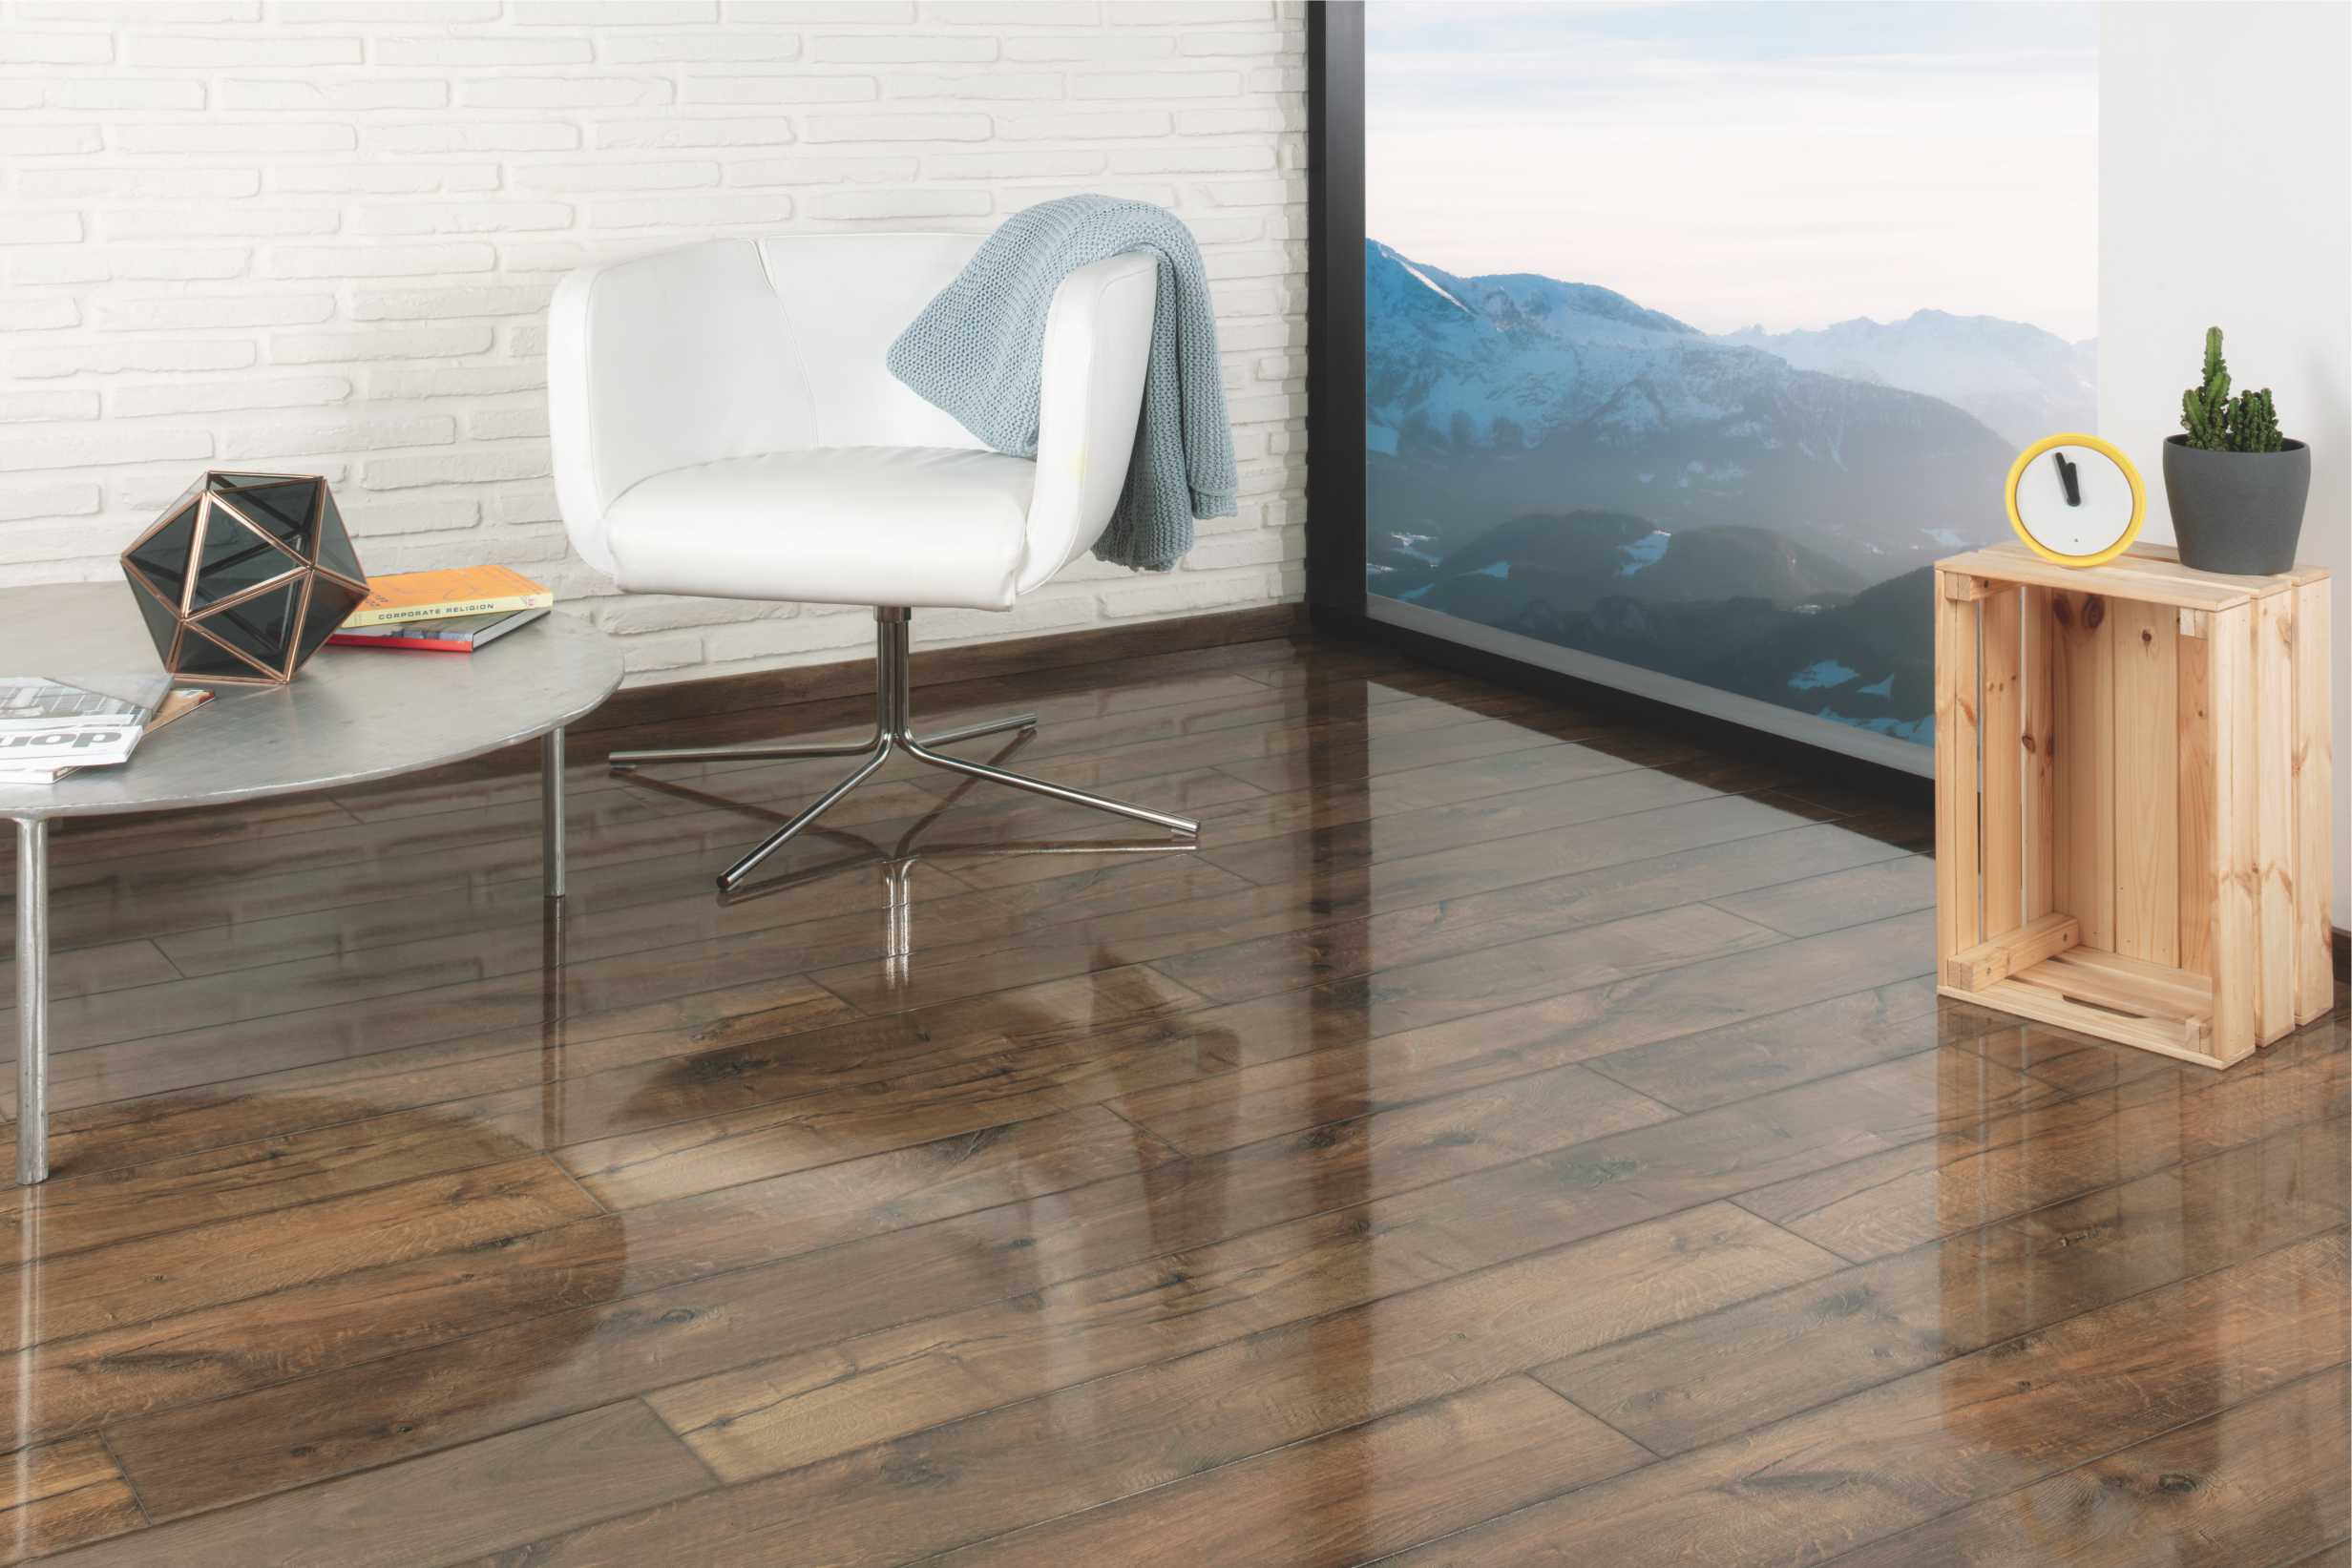 stunning high-gloss, yet rustic laminate flooring